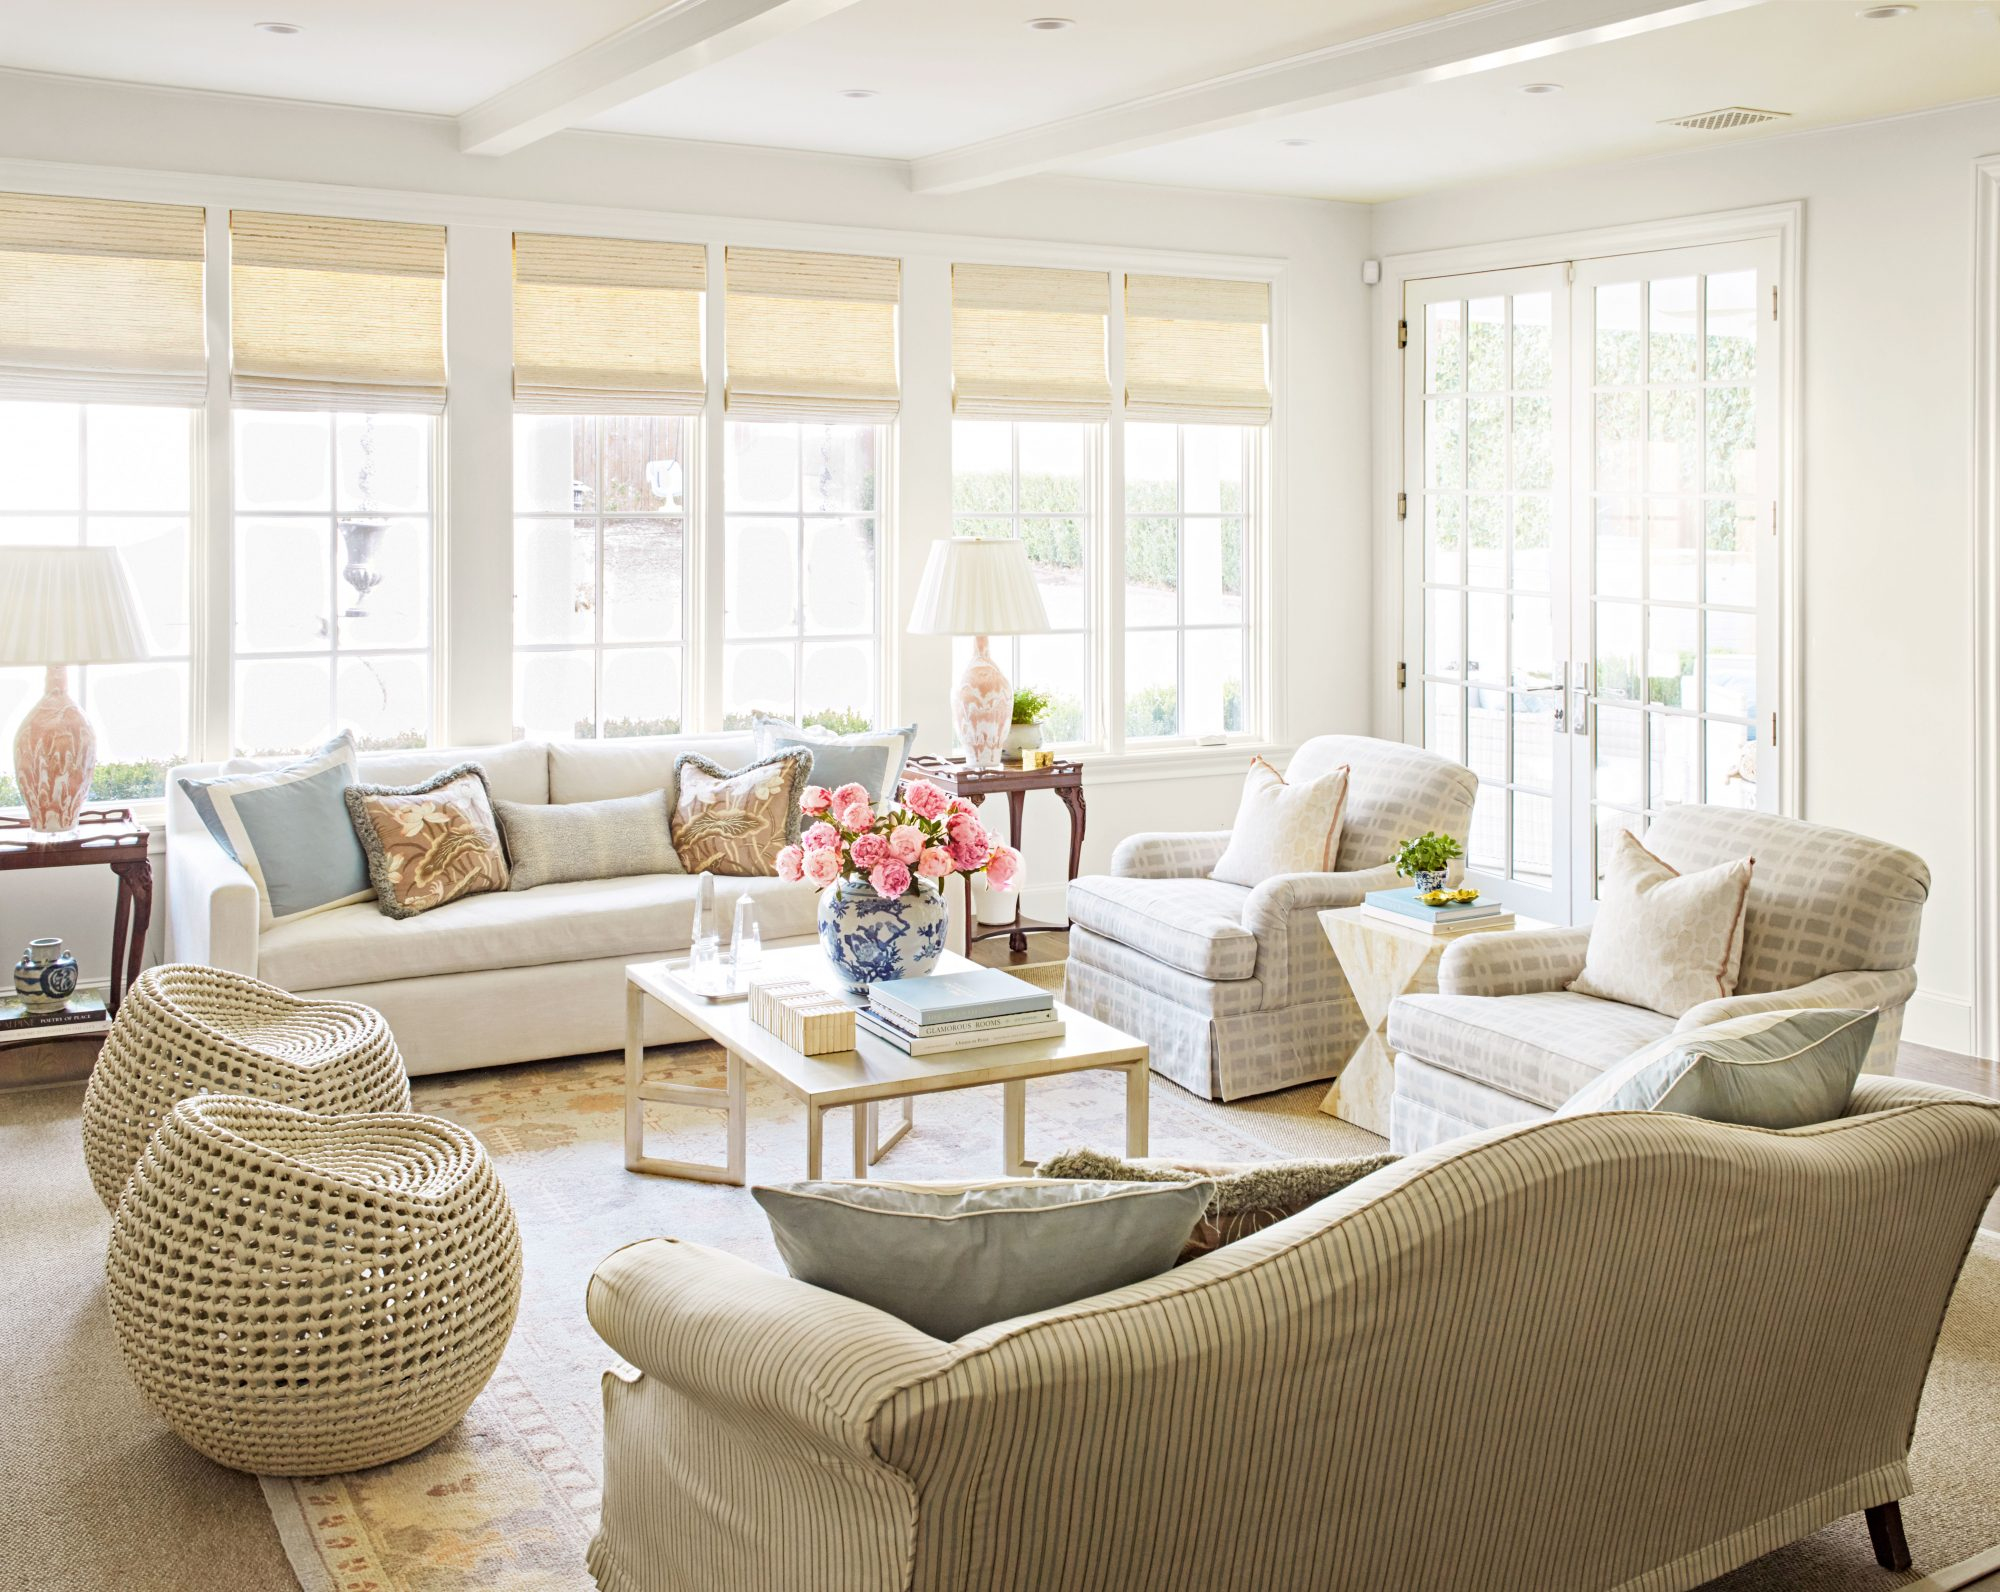 Living room with light colors